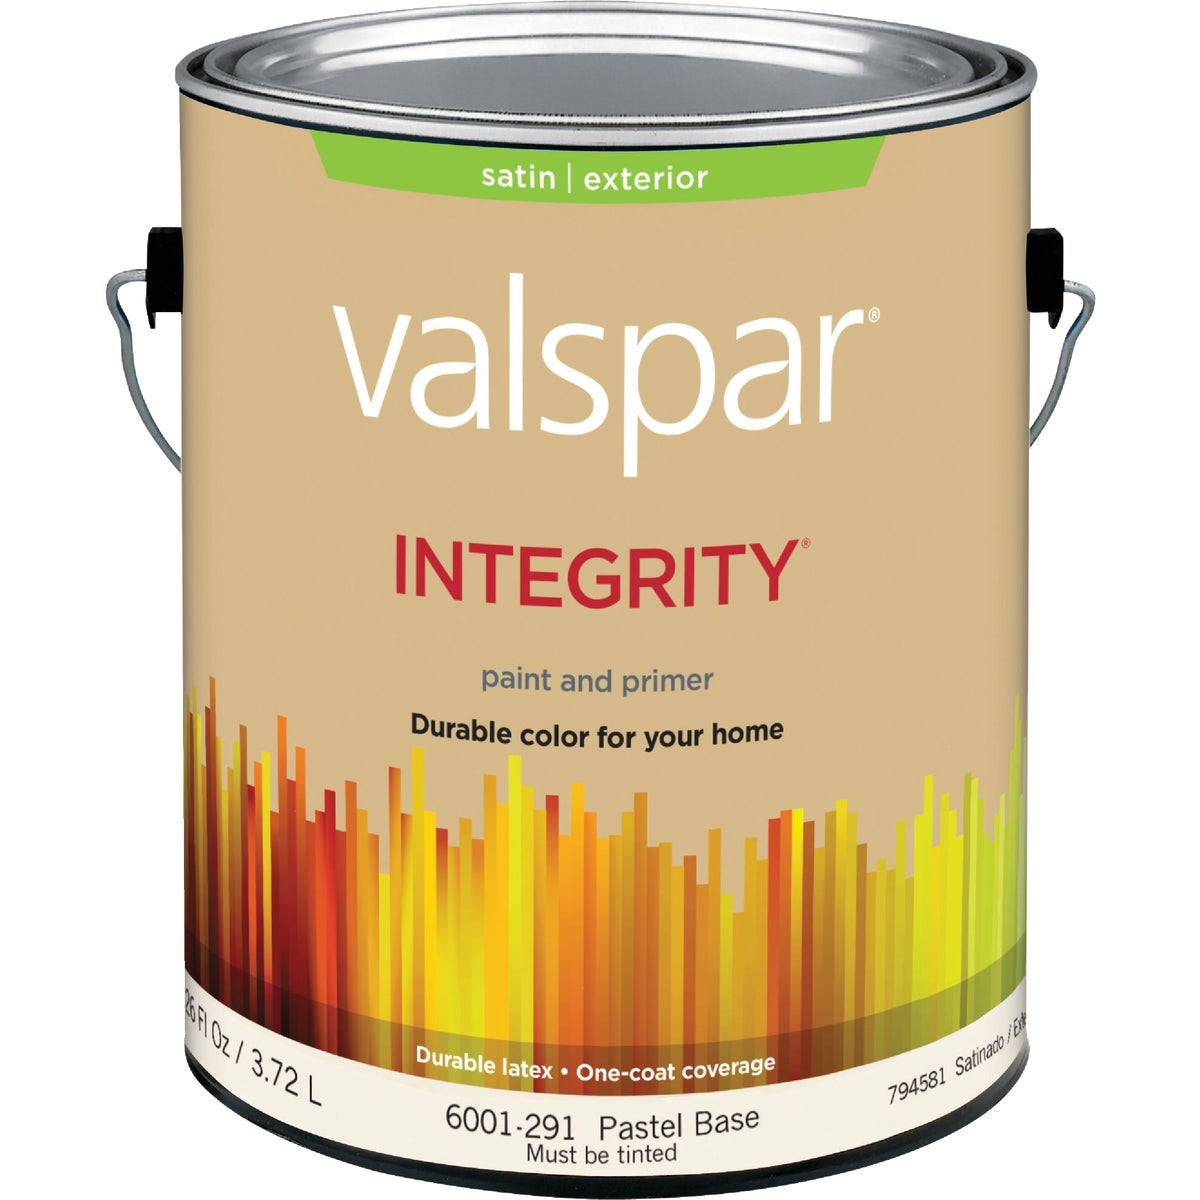 EXT SAT PASTEL BS PAINT - 004.6001291.007 by Valspar Corp